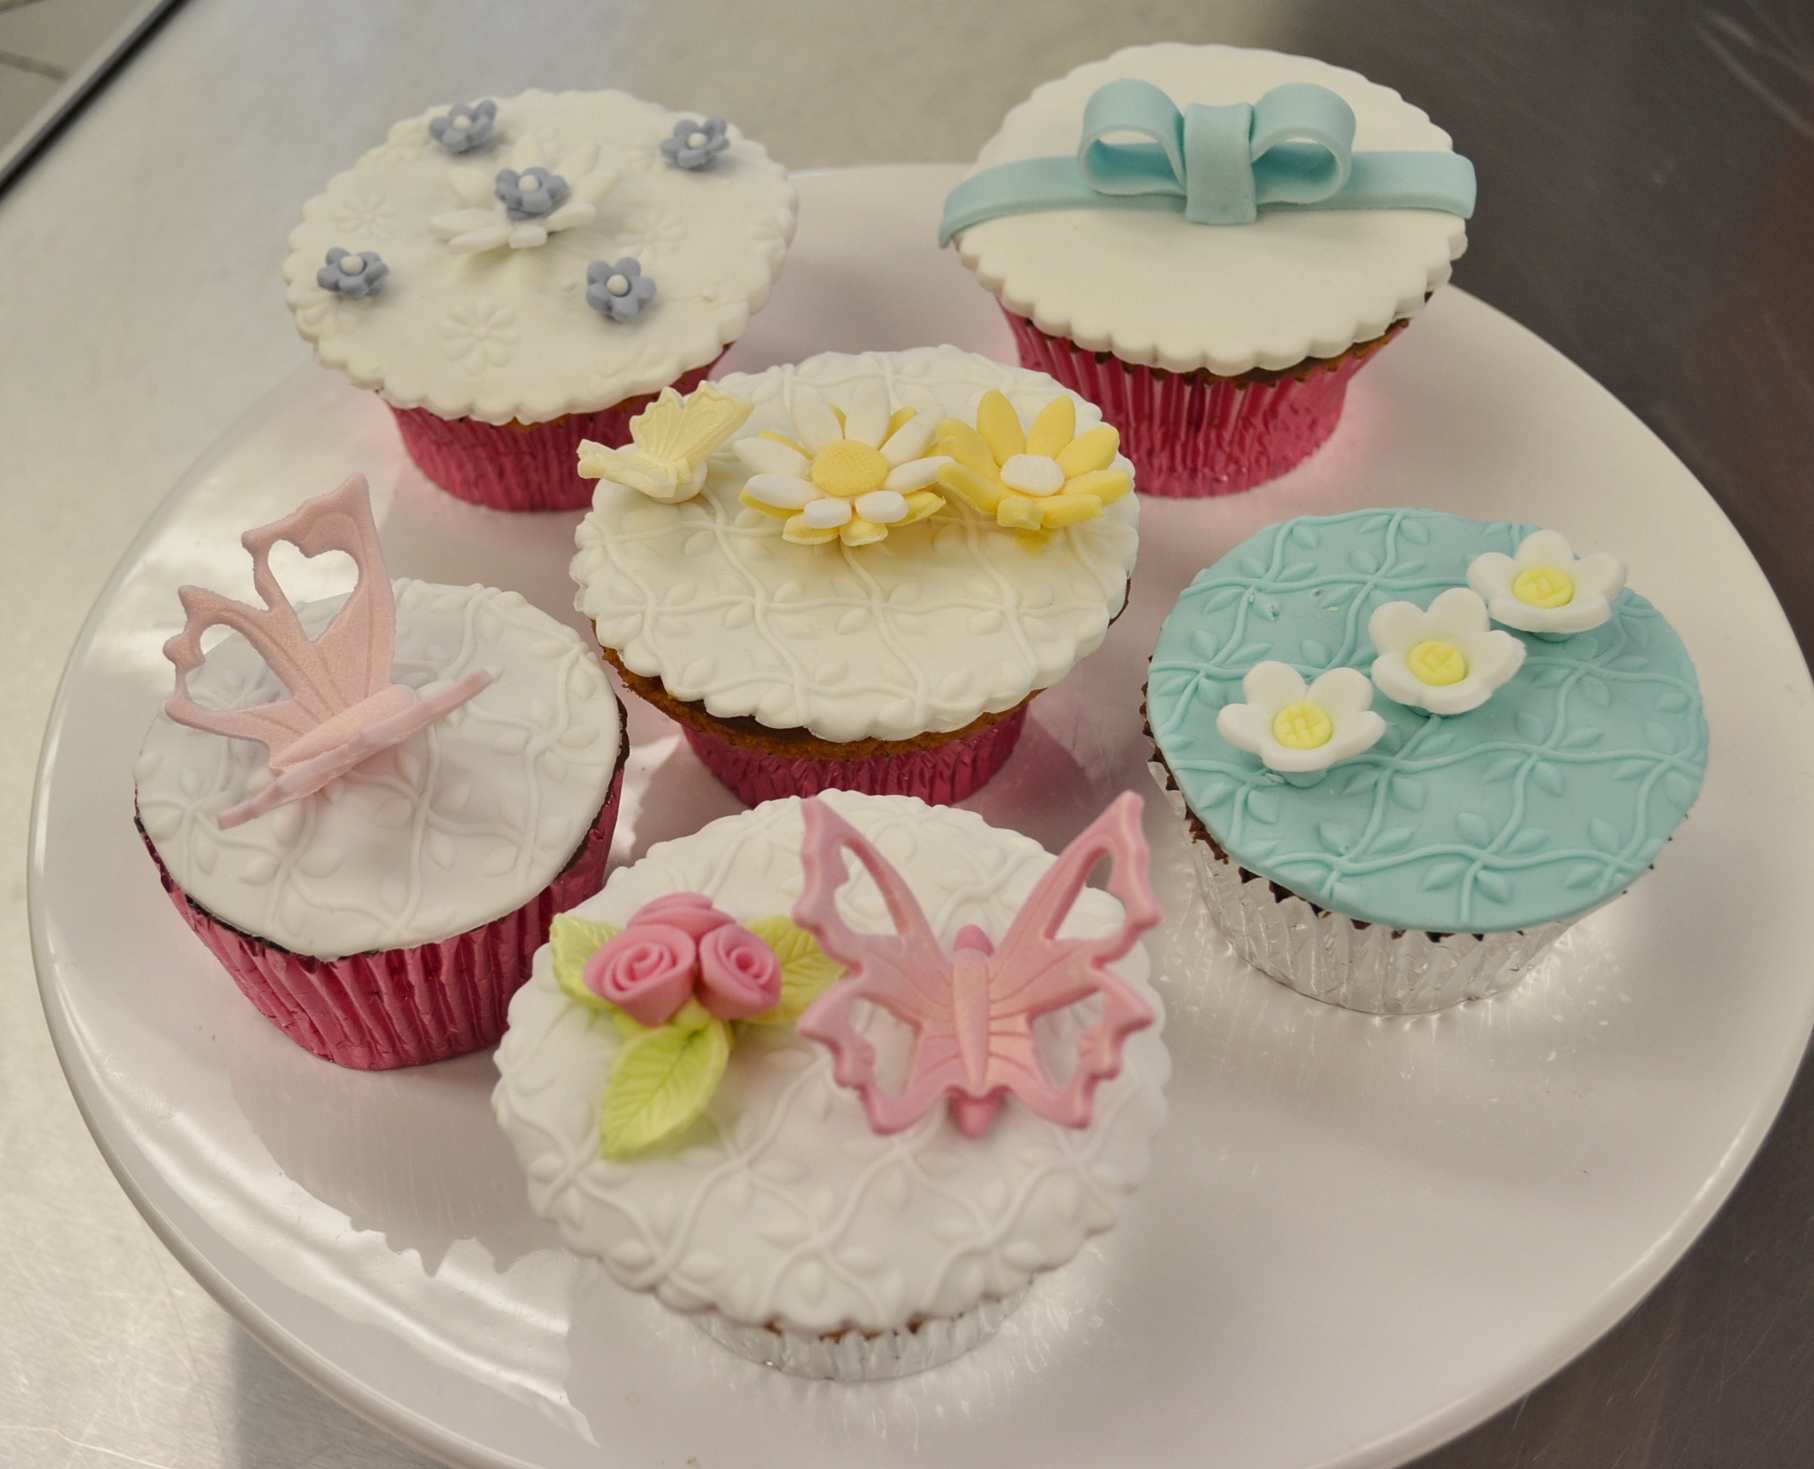 Cake Decorating Classes Logan : Cupcakes   Contemporary Cakes and Classes